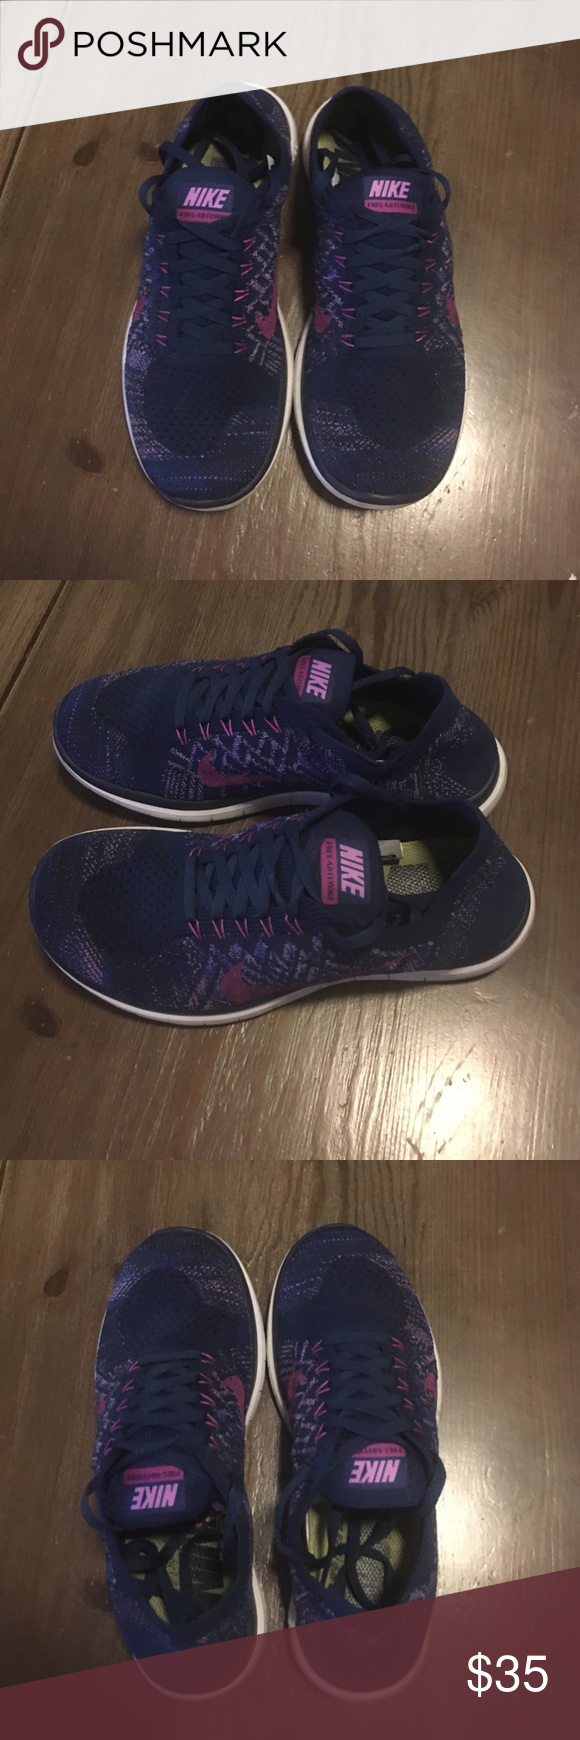 77c9cb37a67d Nike Free 4.0 Flyknit Navy blue with pink and purple detail Nike Free 4.0  Flyknit shoes. Women s size 7.5. No snags or tears. Nike Shoes Athletic  Shoes